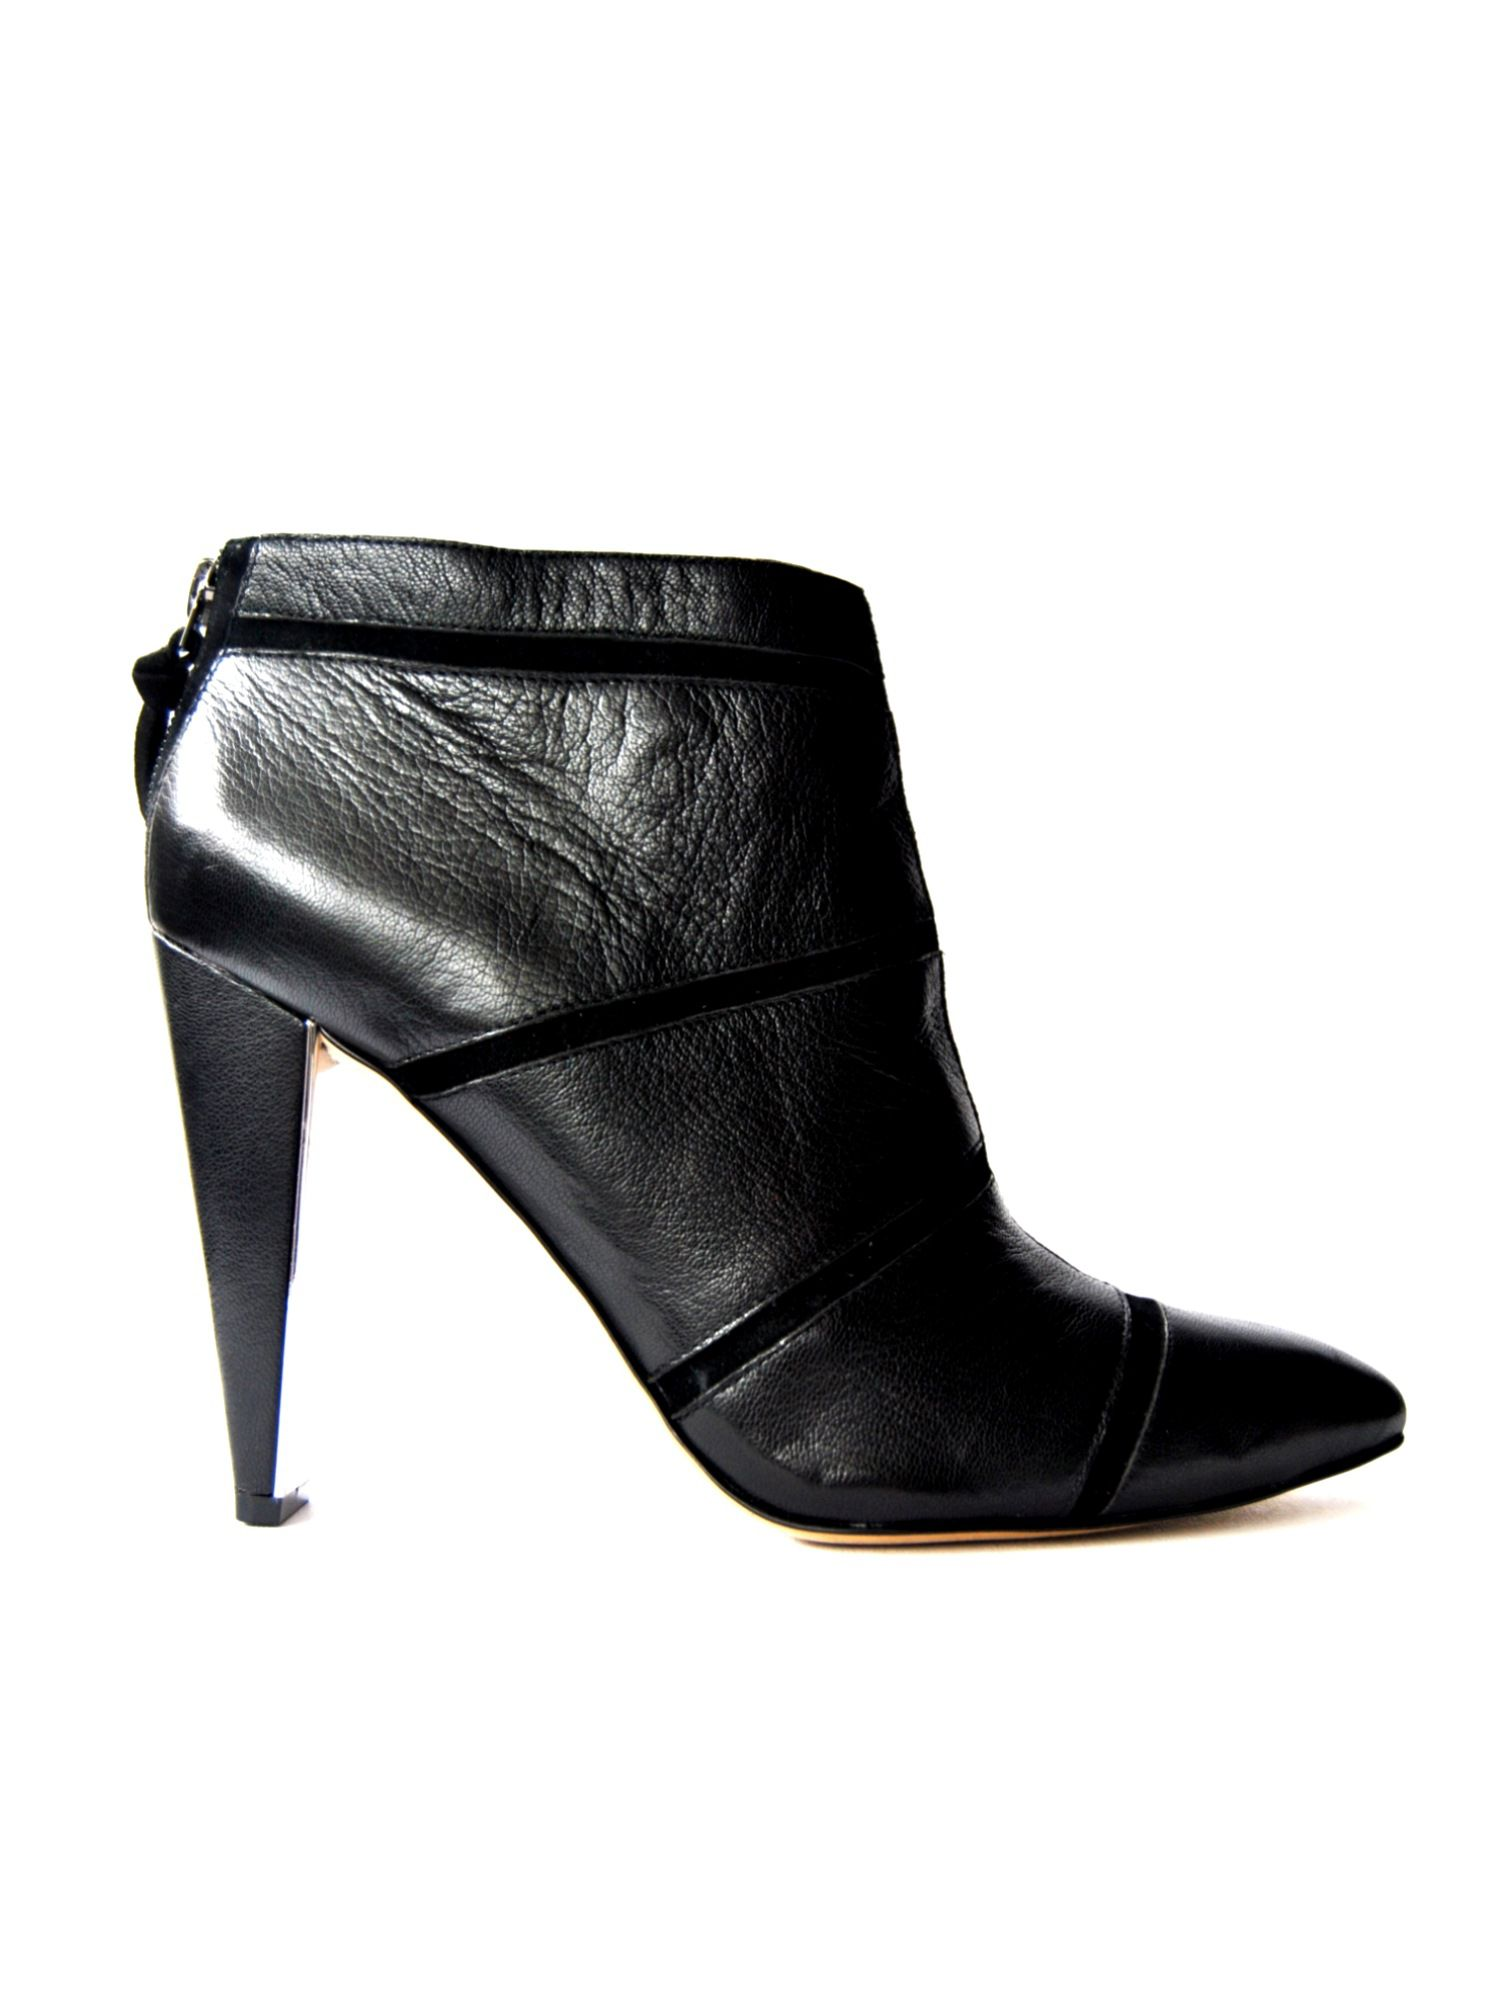 Lyst french connection maddy ankle boots in black - French intellectual property office ...